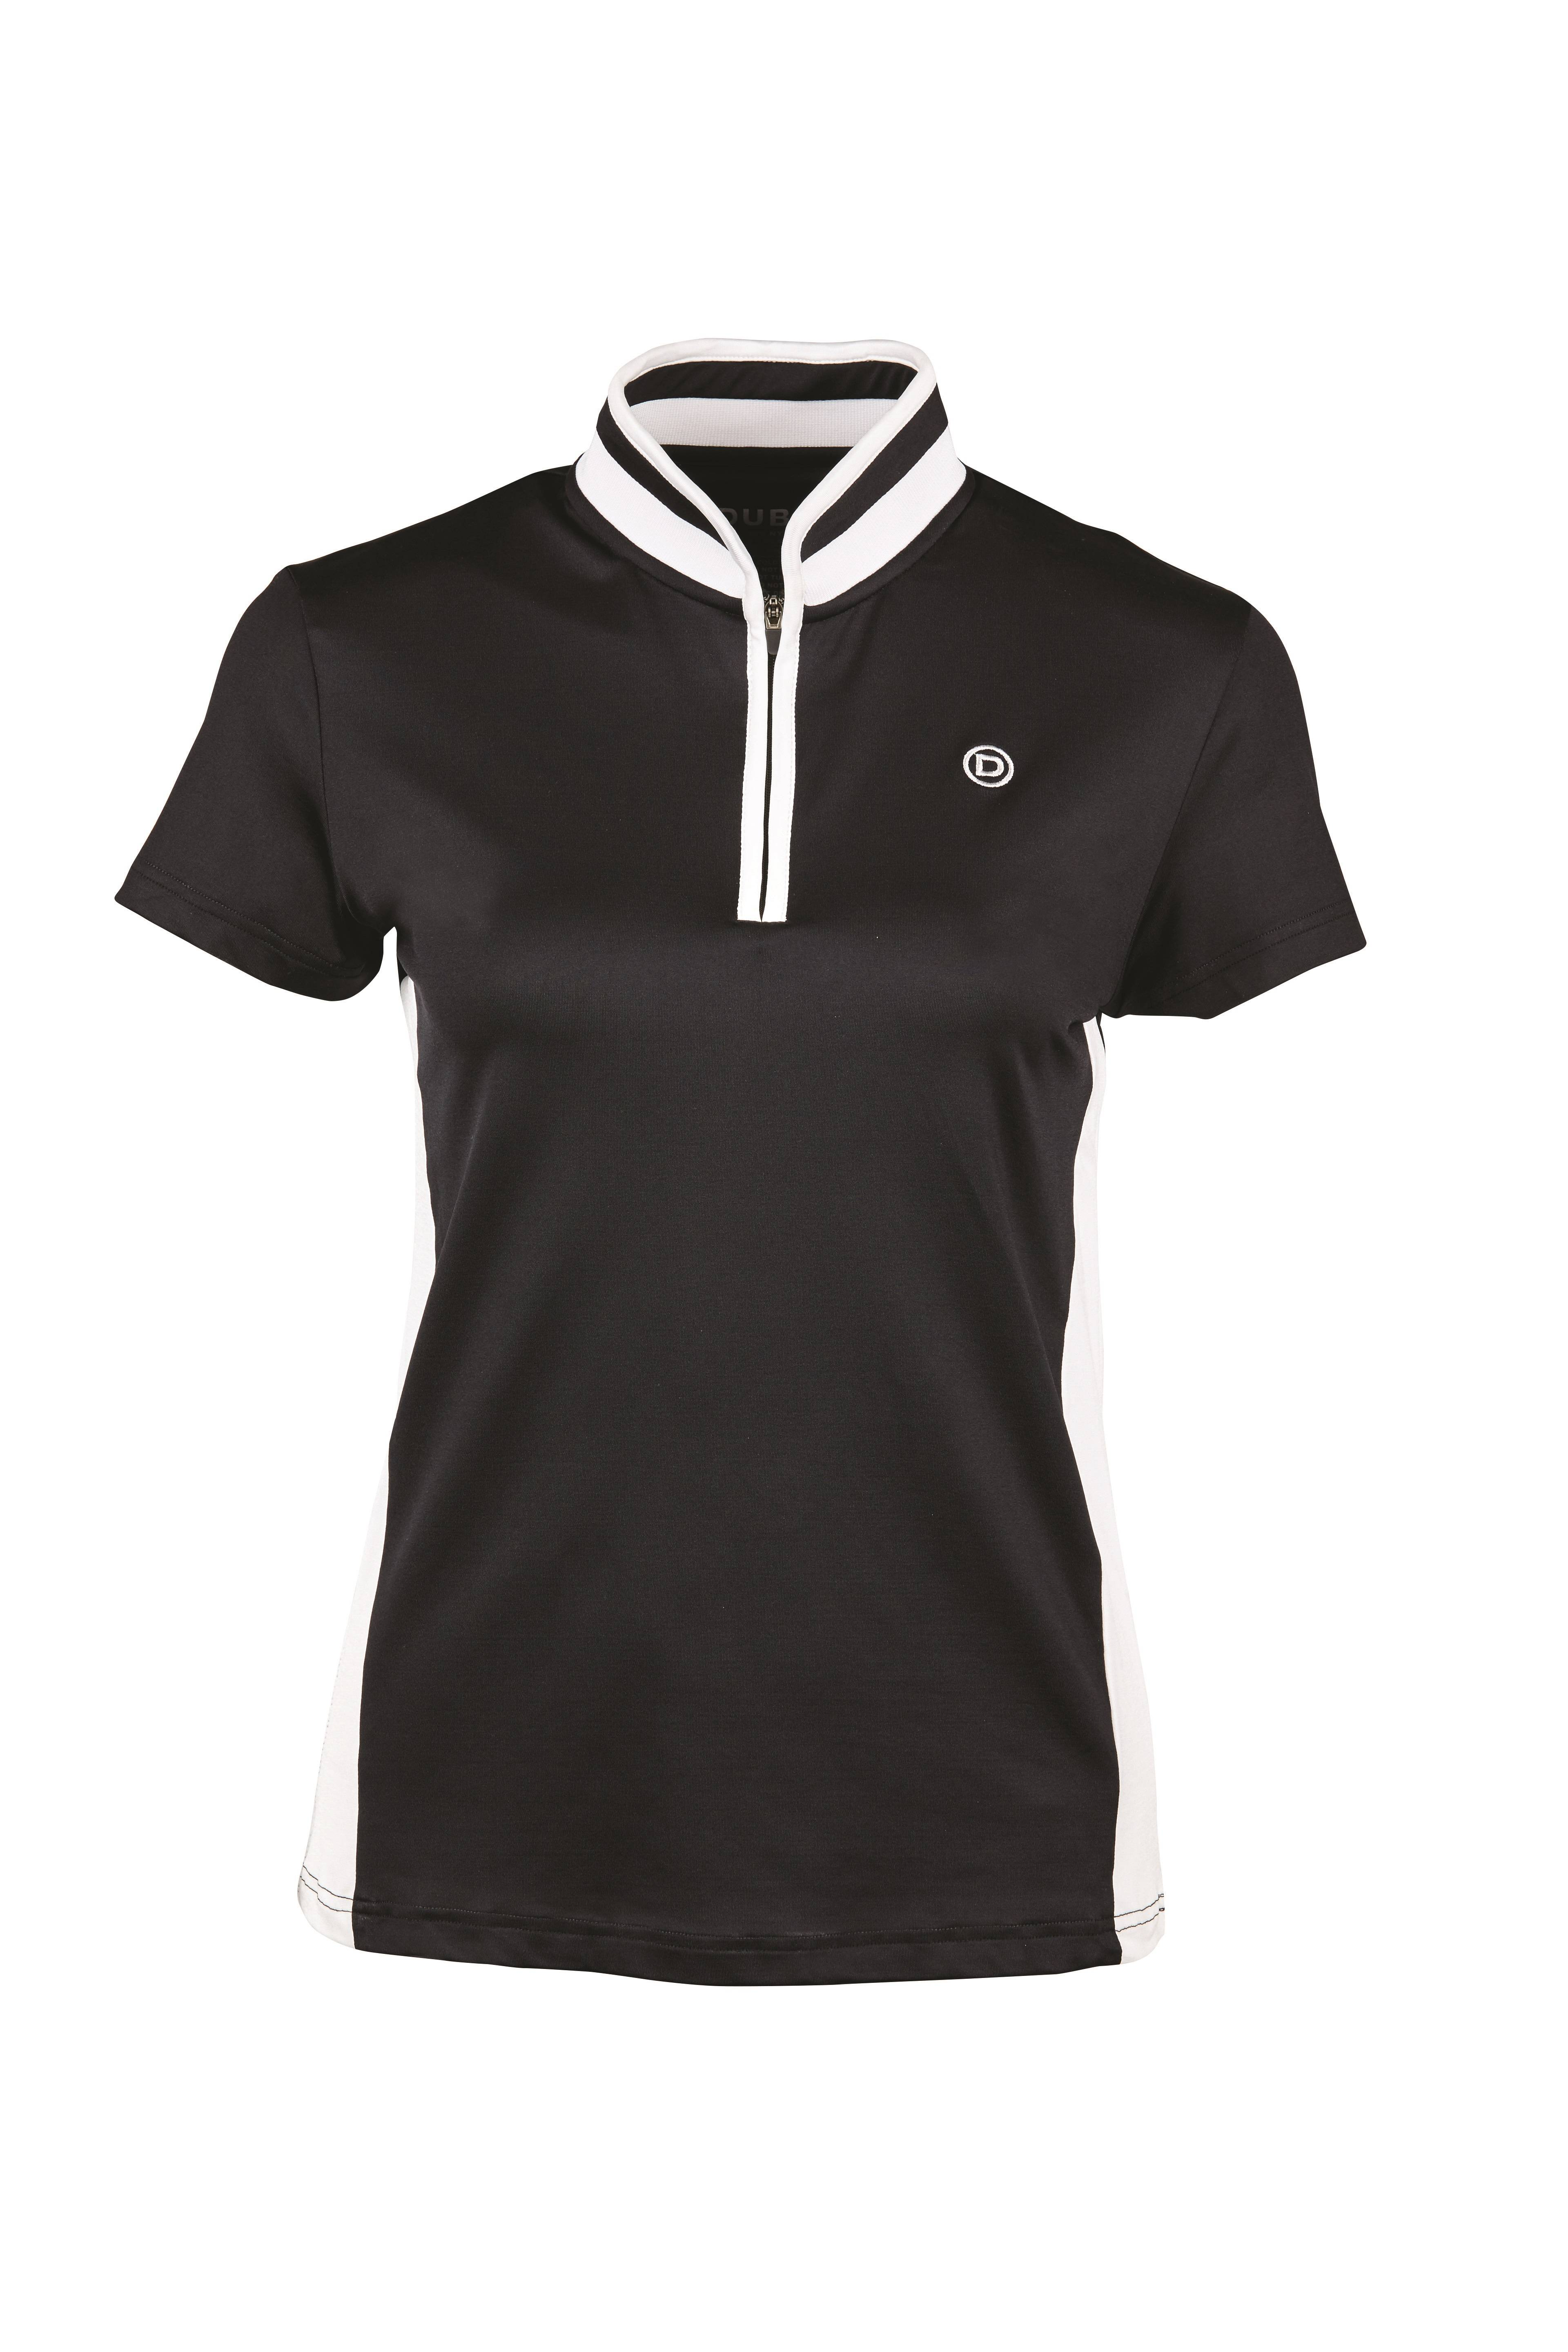 Dublin Shadowfax CDT Short Sleeve Zip Thru Top - Ladies